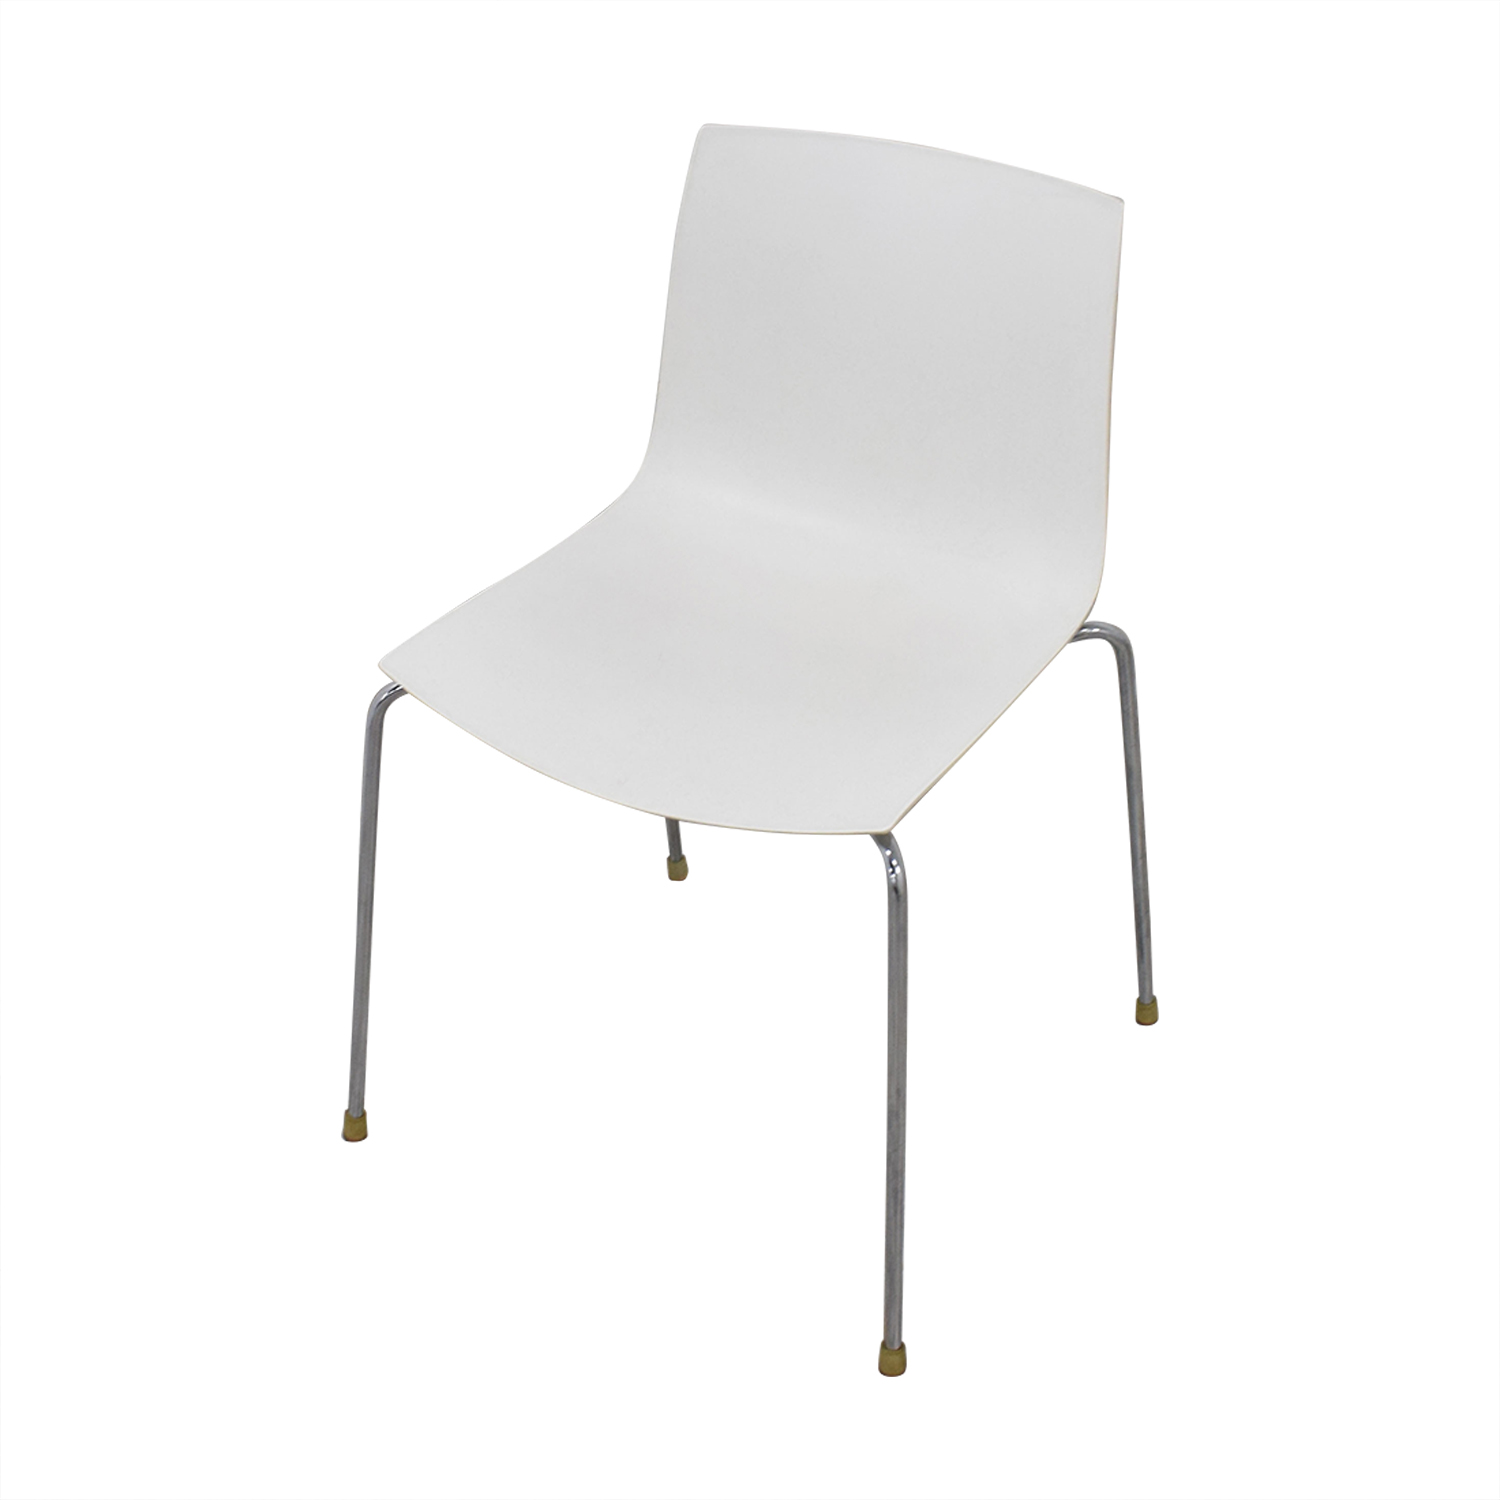 "Arper Arper ""Catifa 46"" Chairs for sale"